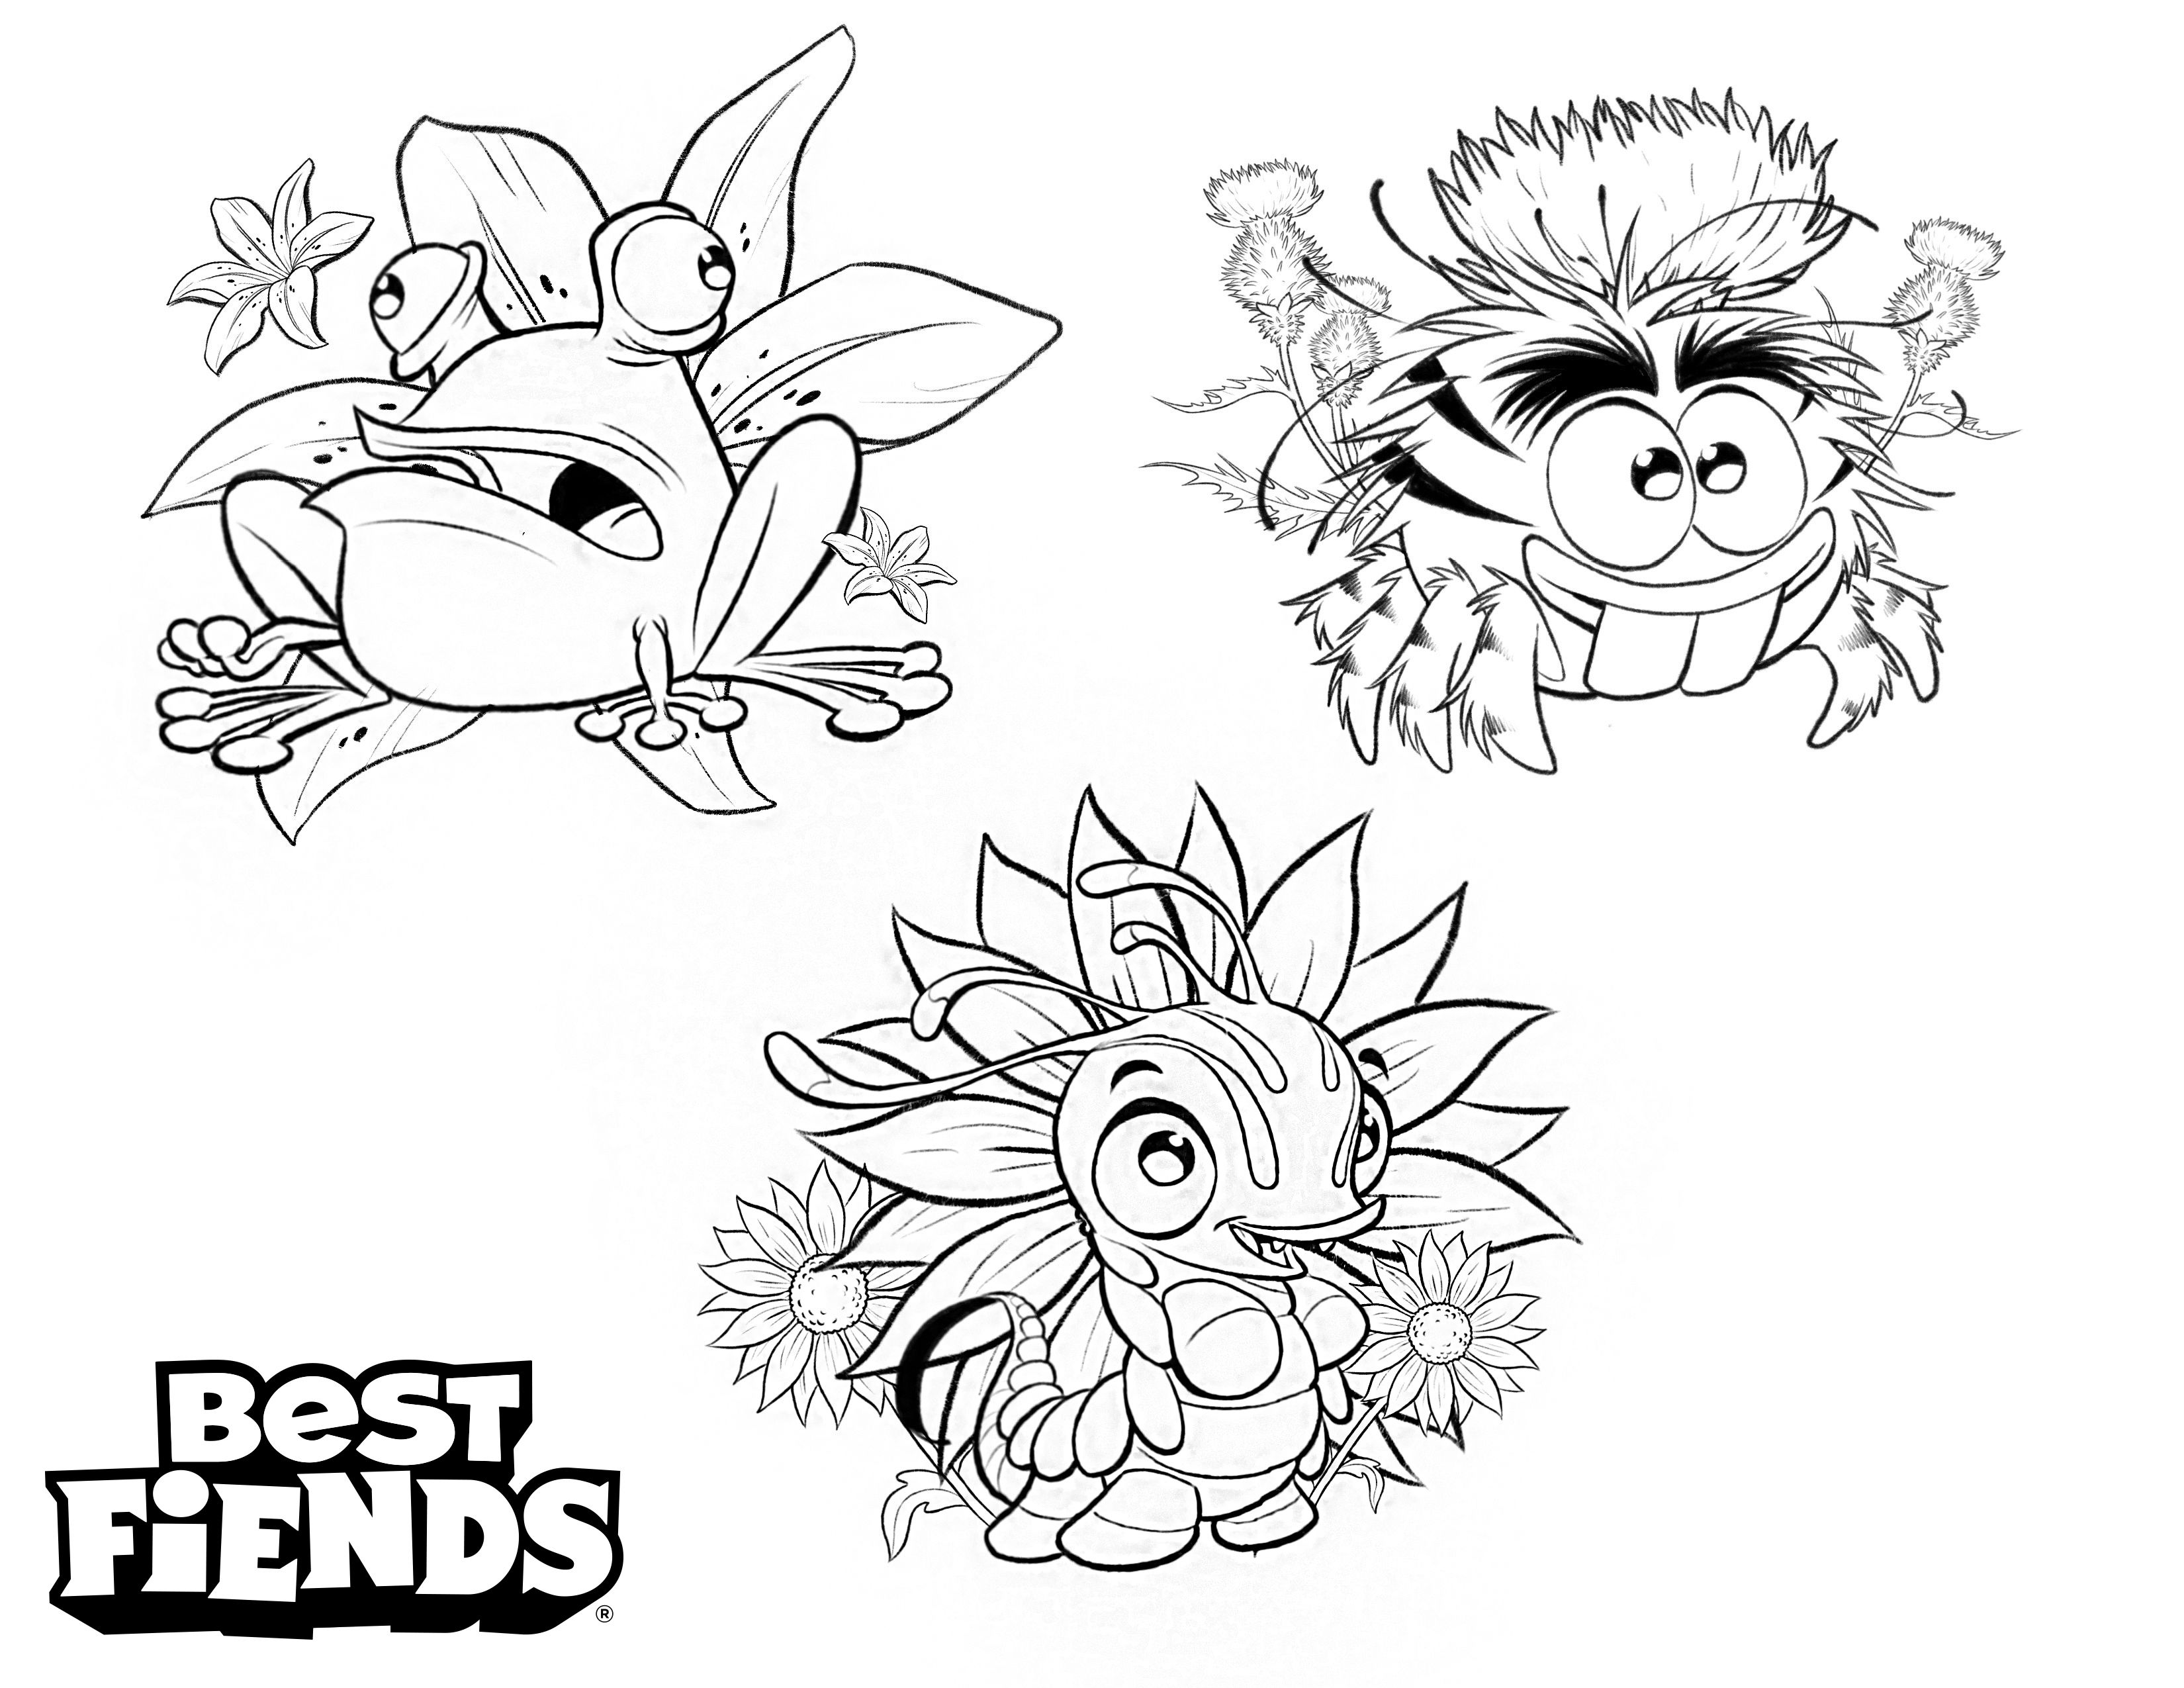 Best Fiends FLOWER POWER! Can you color these Fiends in